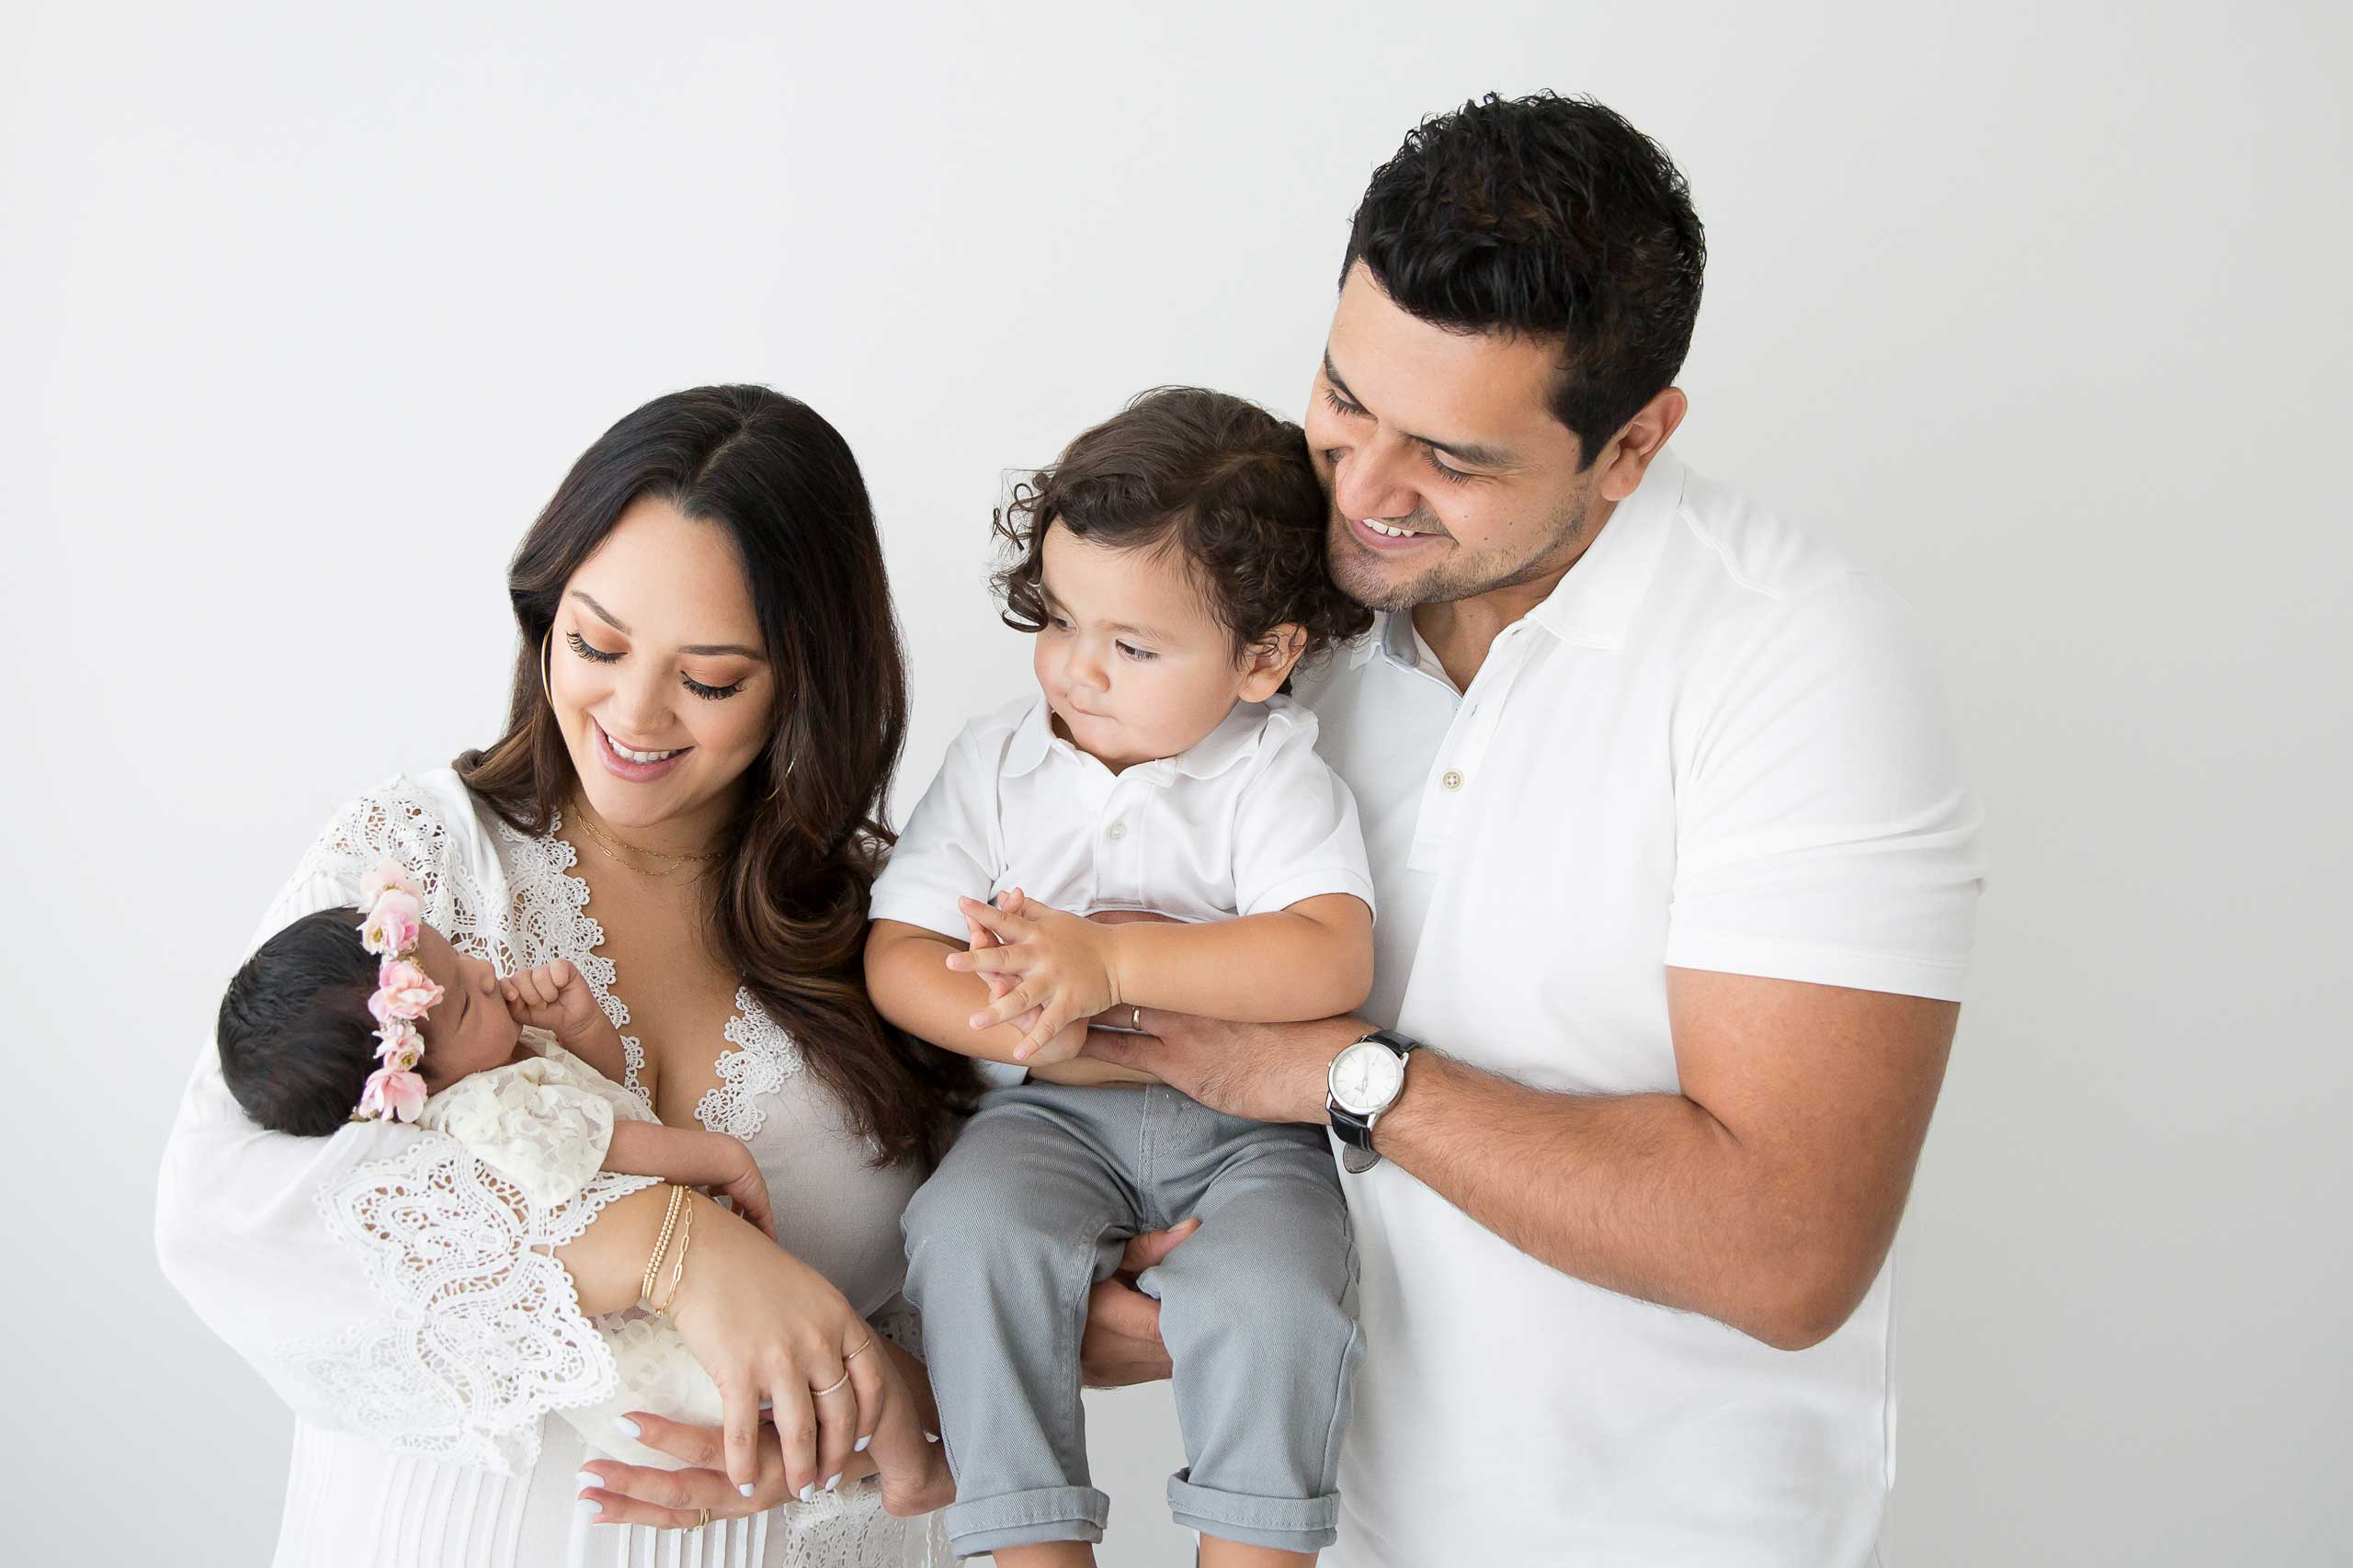 family photograph taken in Los Angeles by Ramina Magid Photography